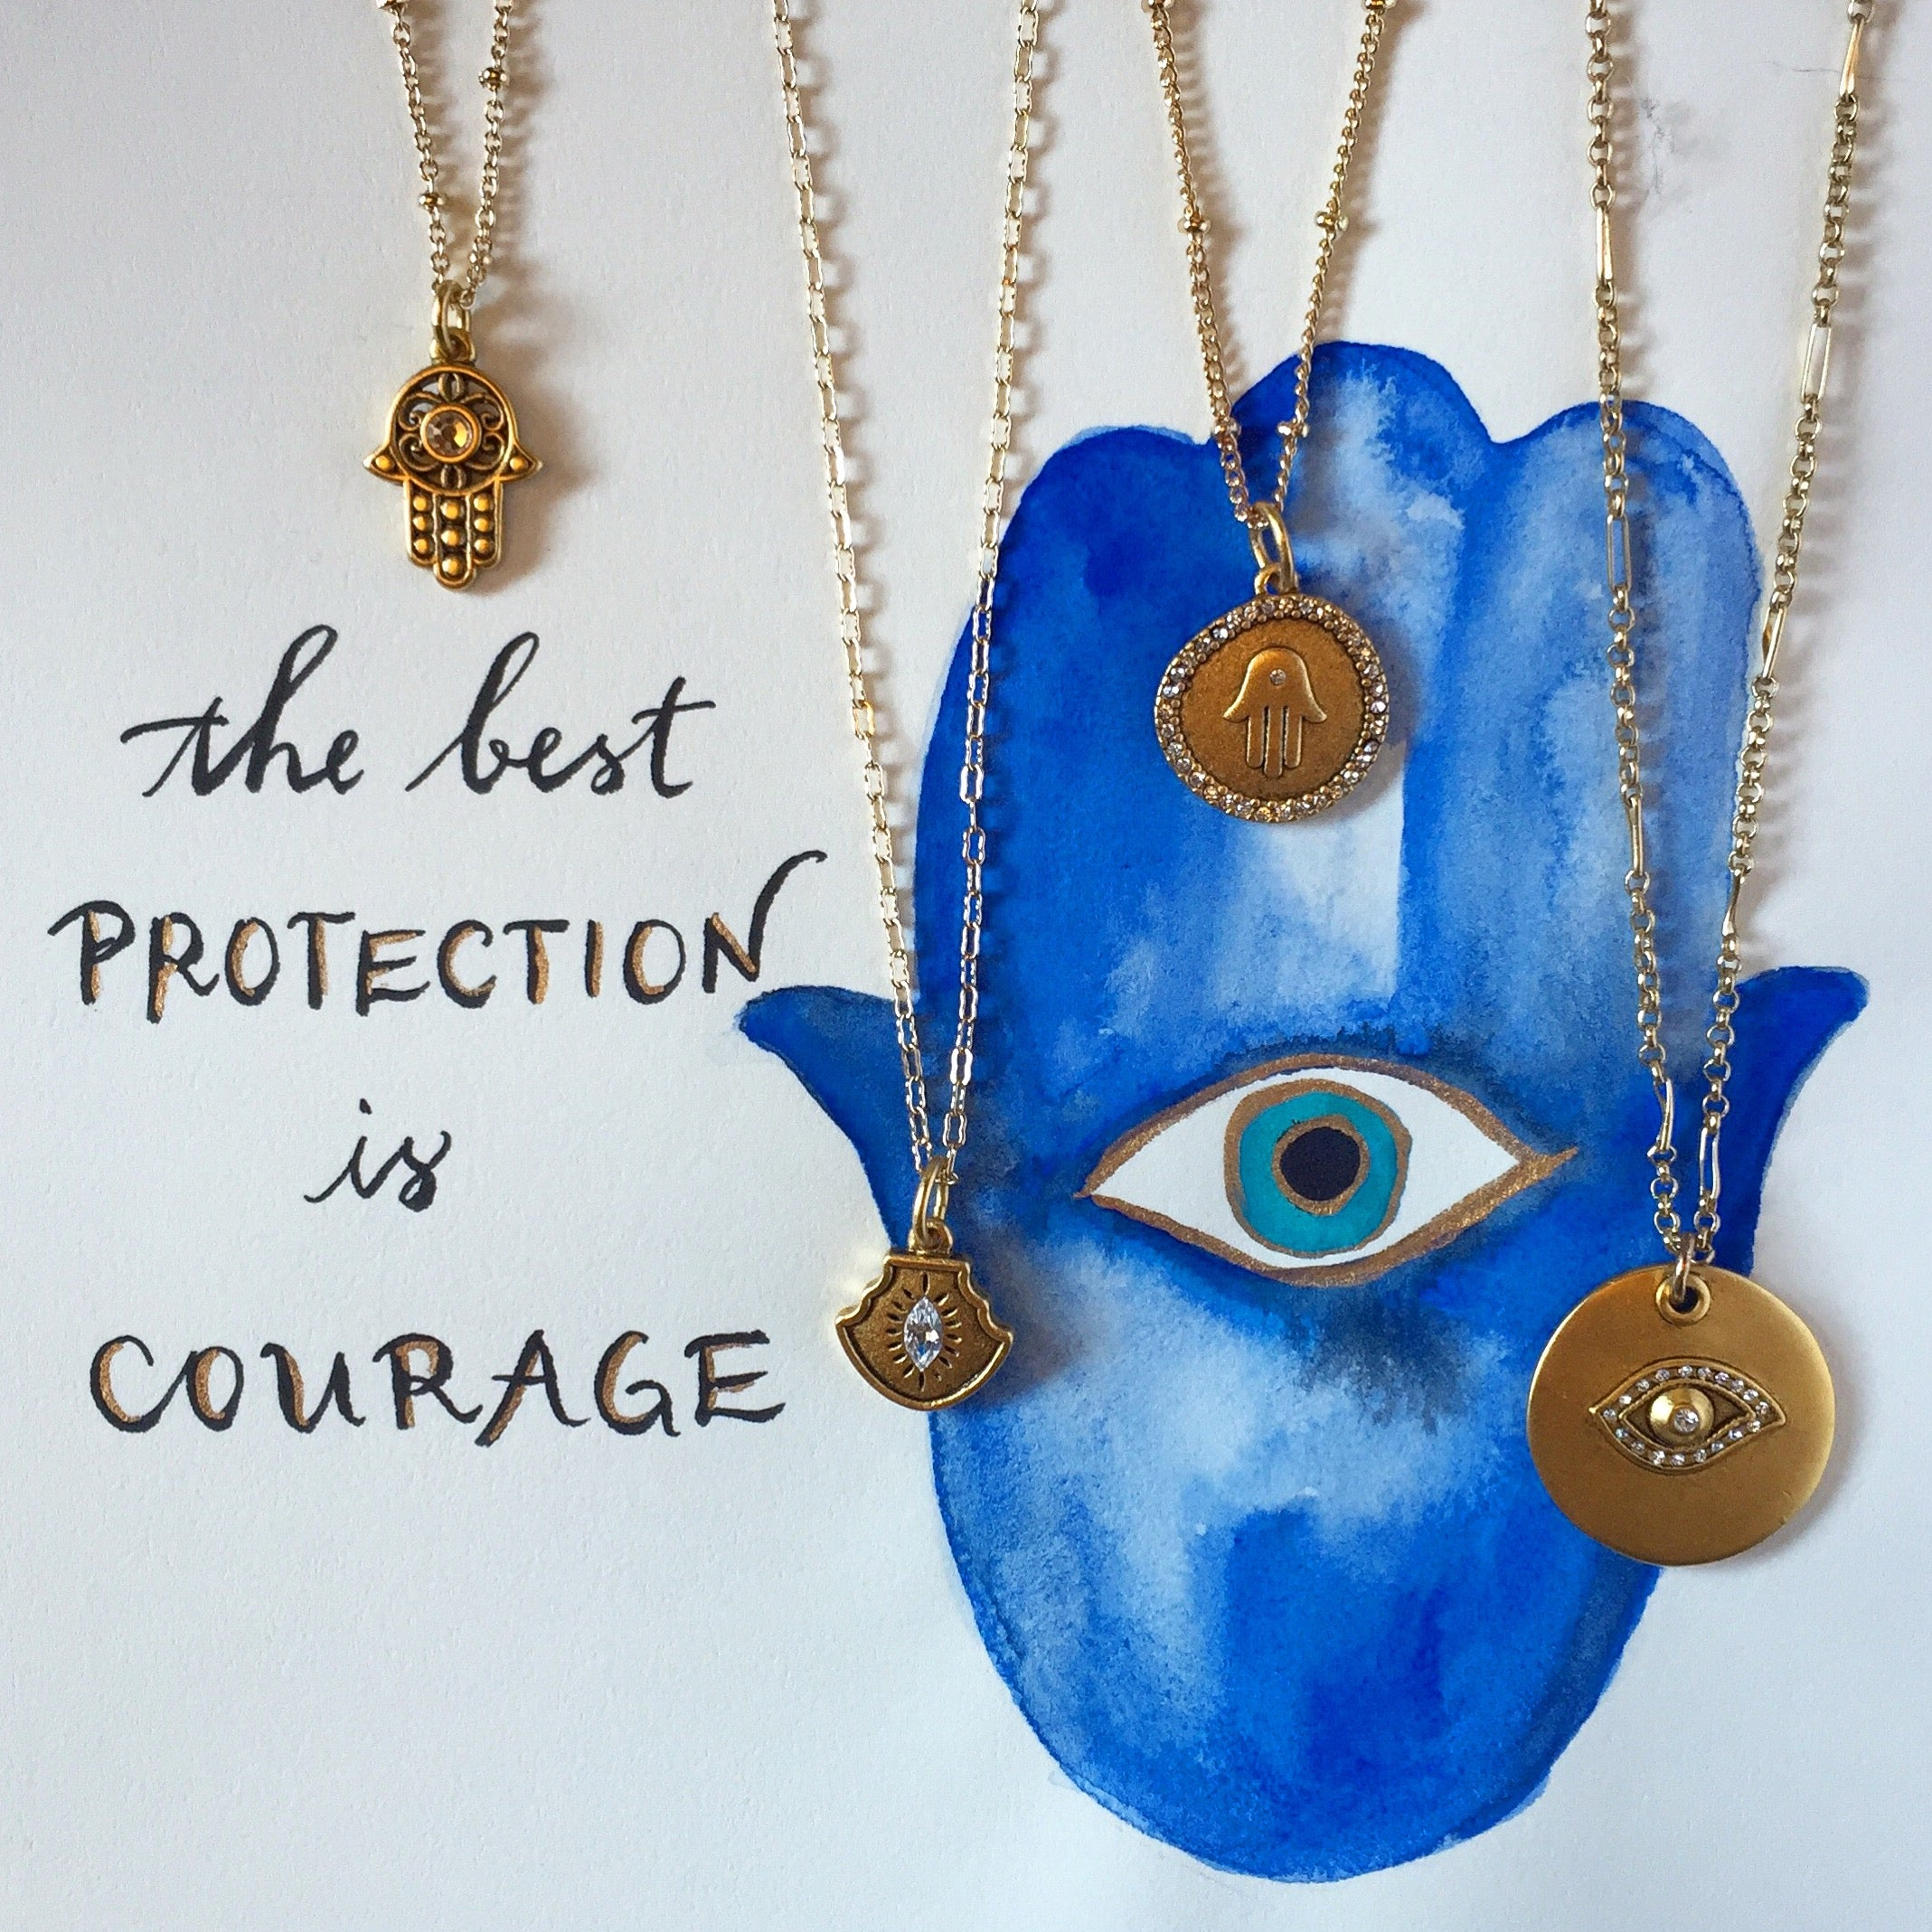 #SequinSayings - Courage is the Best Protection